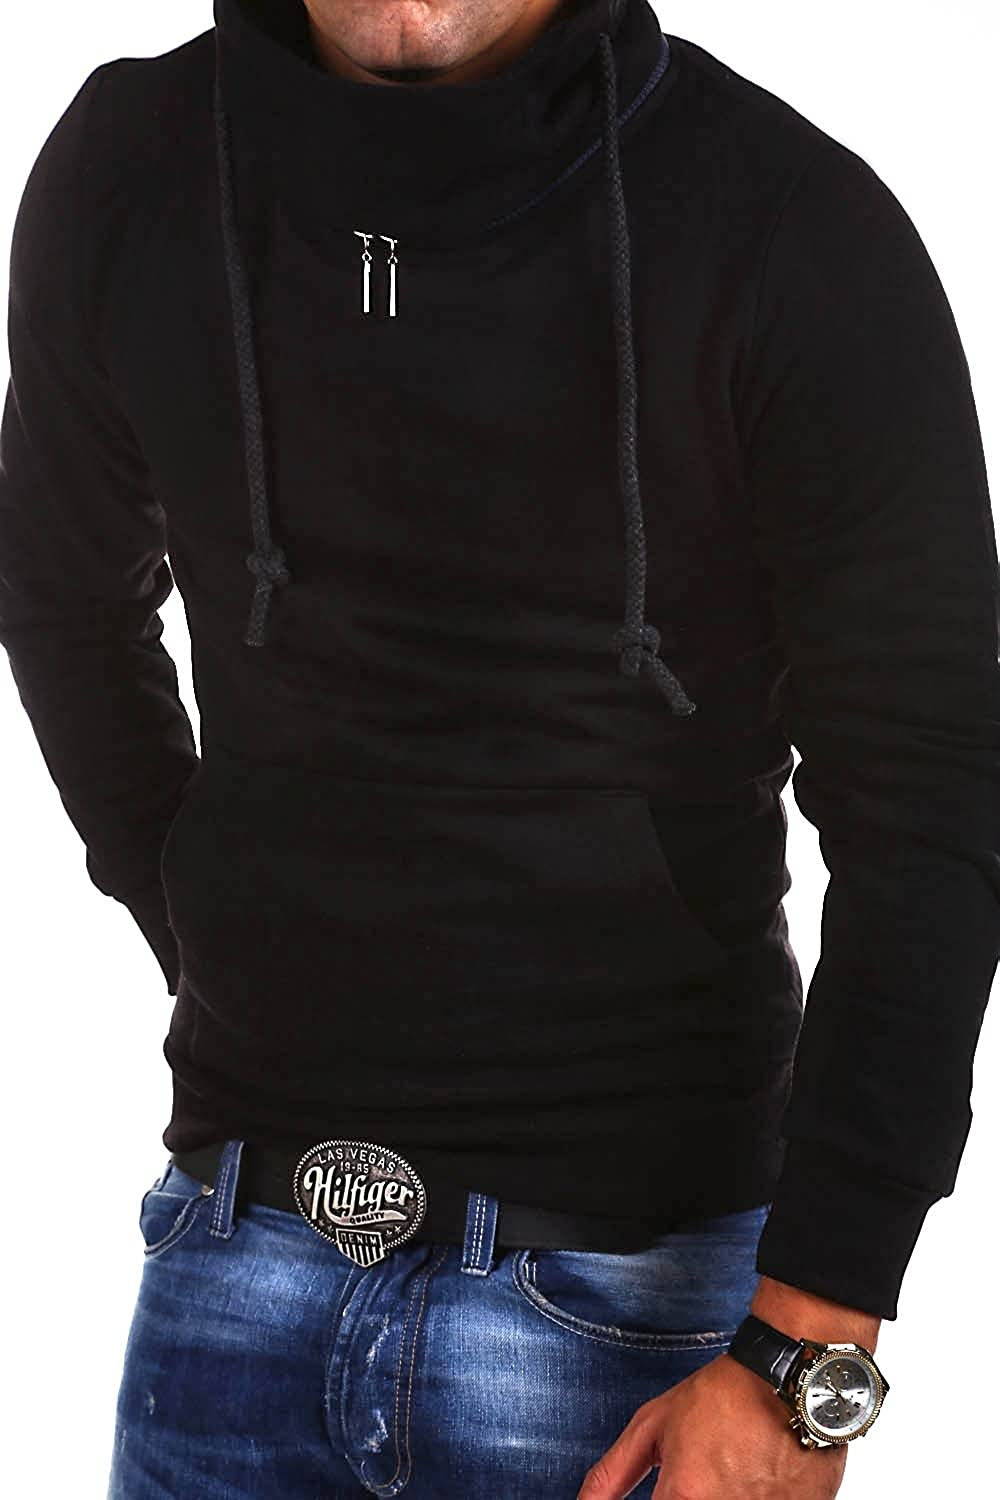 MT Styles Sweatshirt Zipped High Neck Men K-104